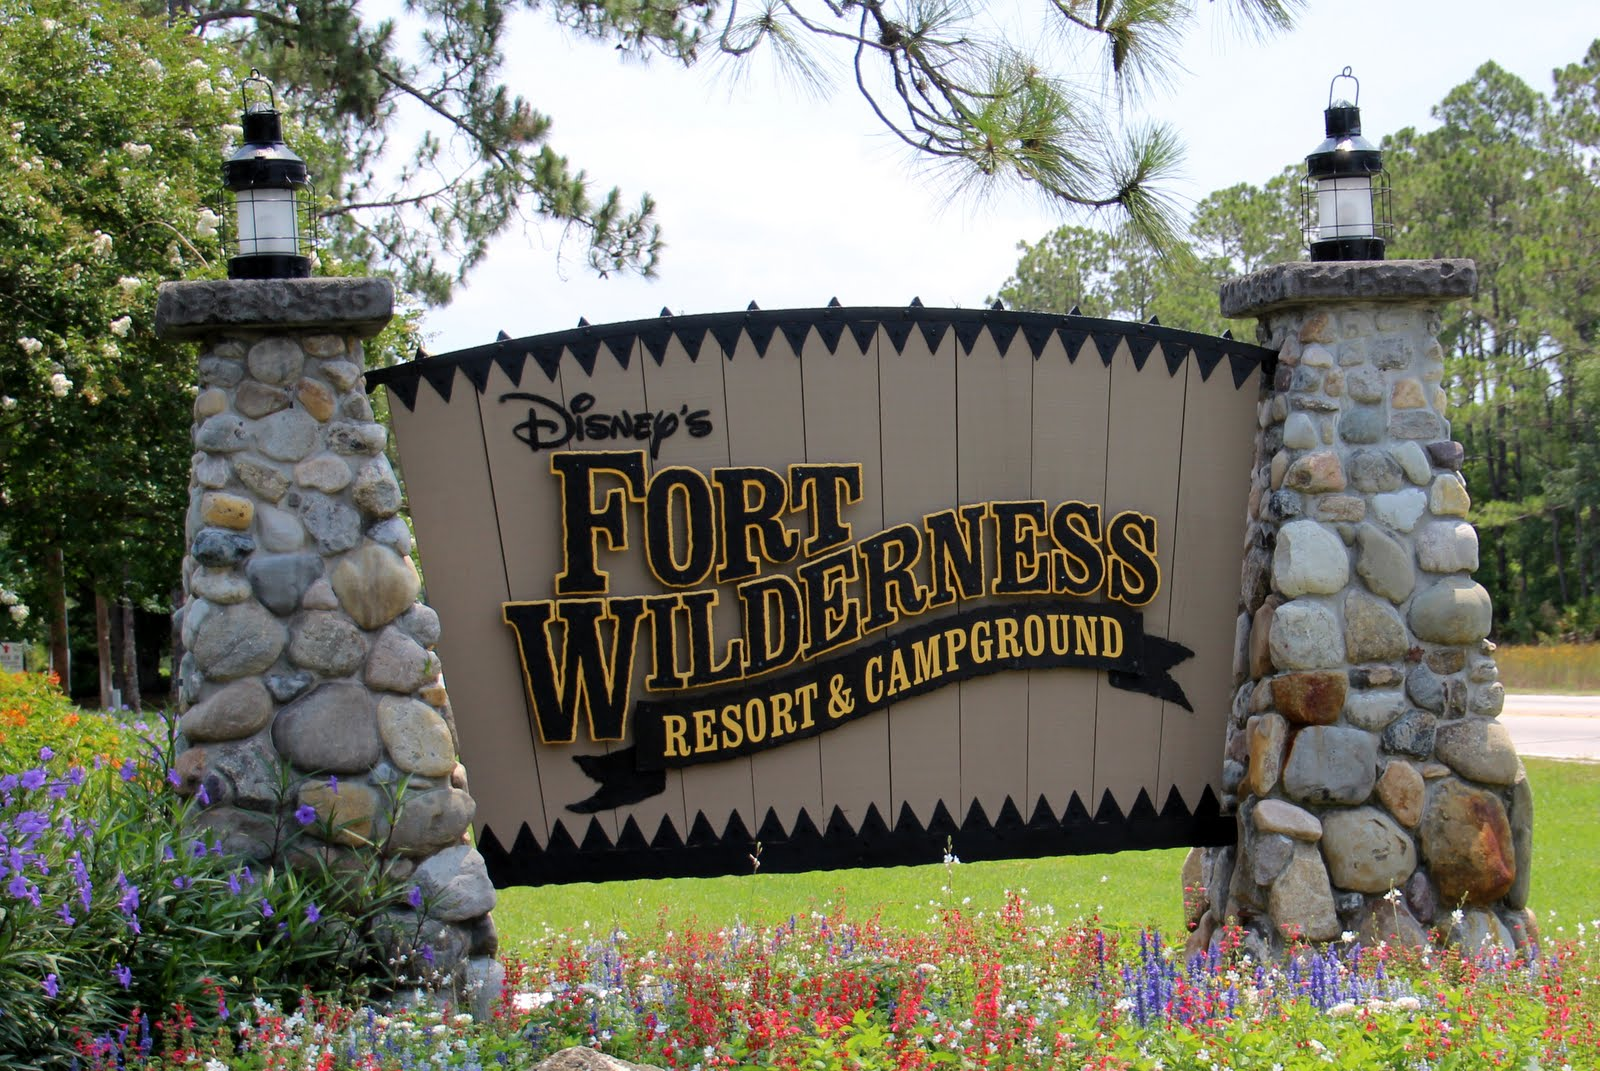 Operation explorations review fort wilderness campground for Disney cabins fort wilderness